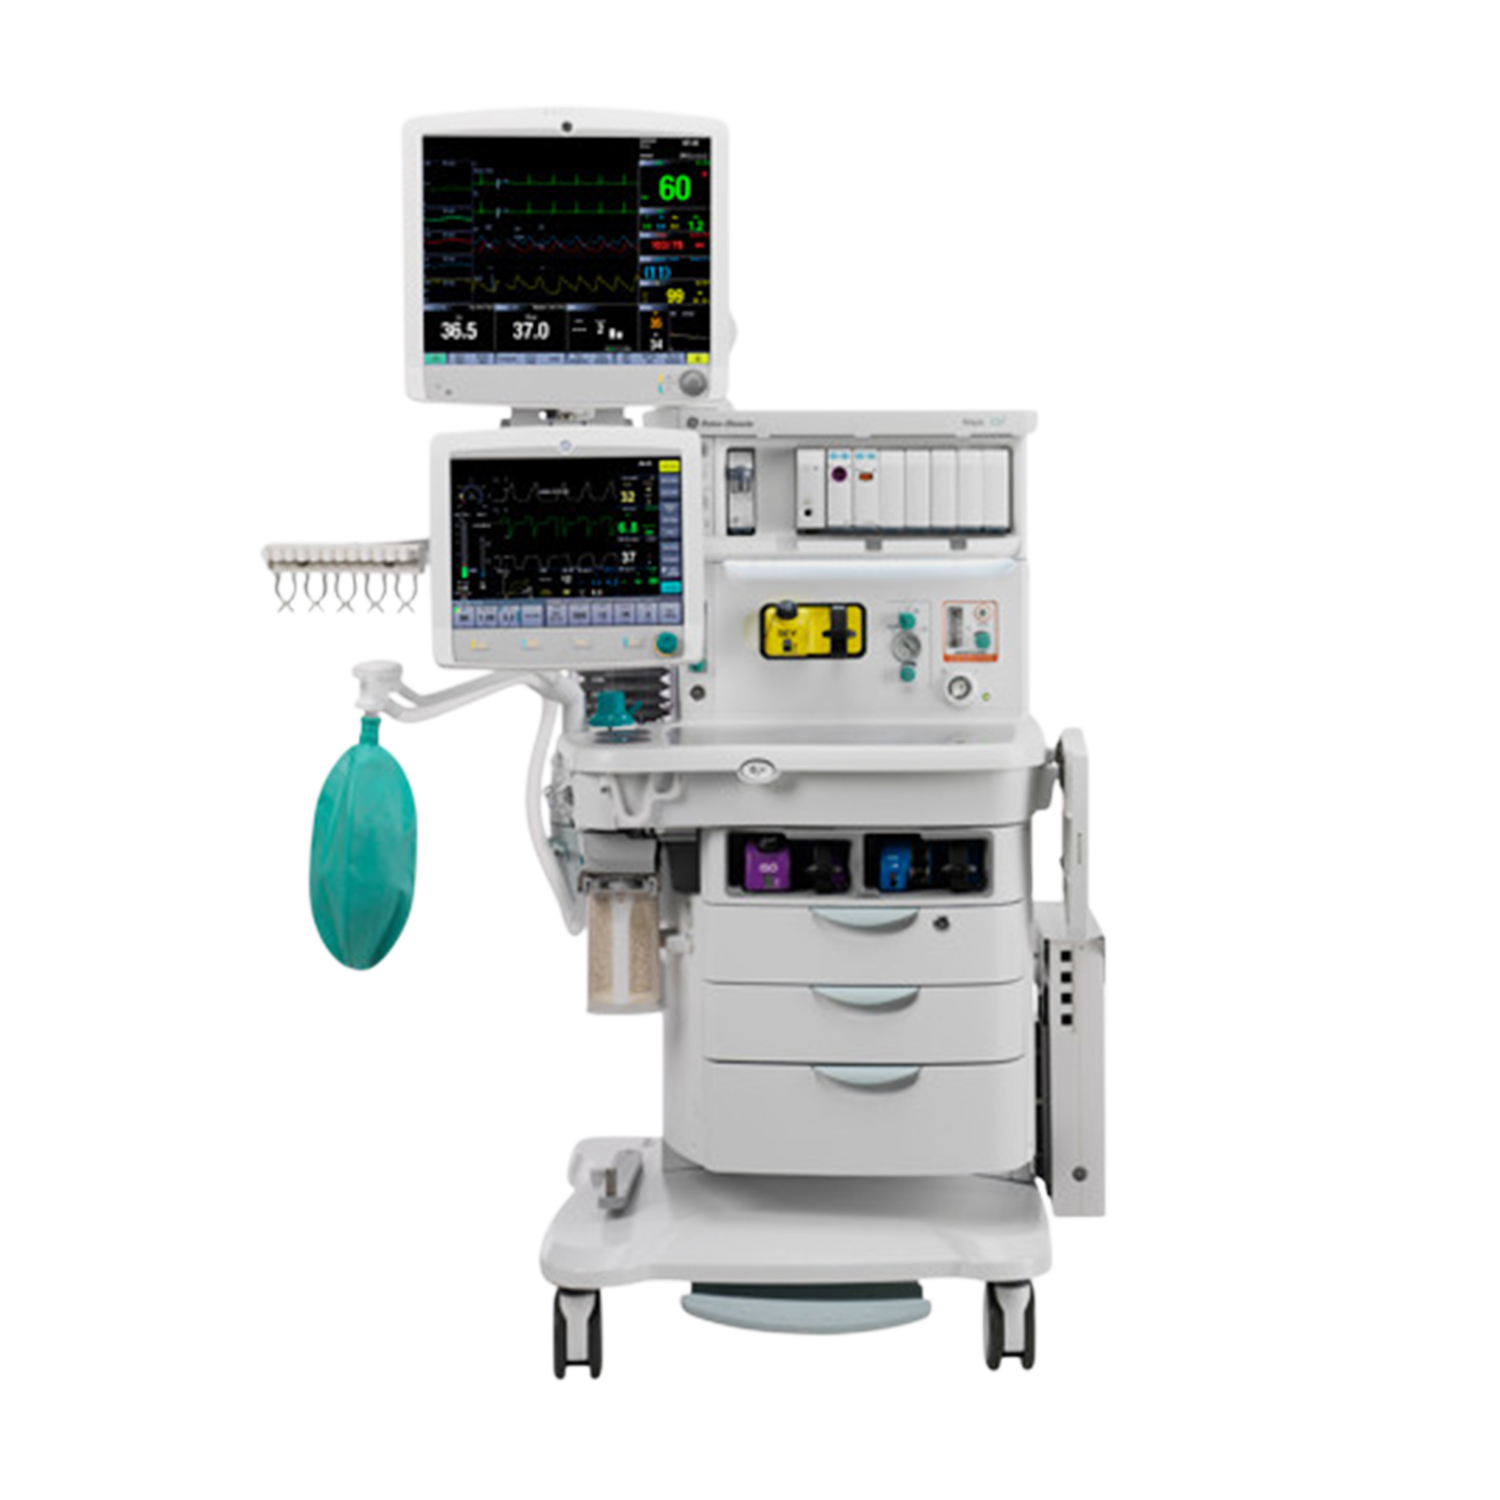 GE Aisys CS² Anesthesia Machine